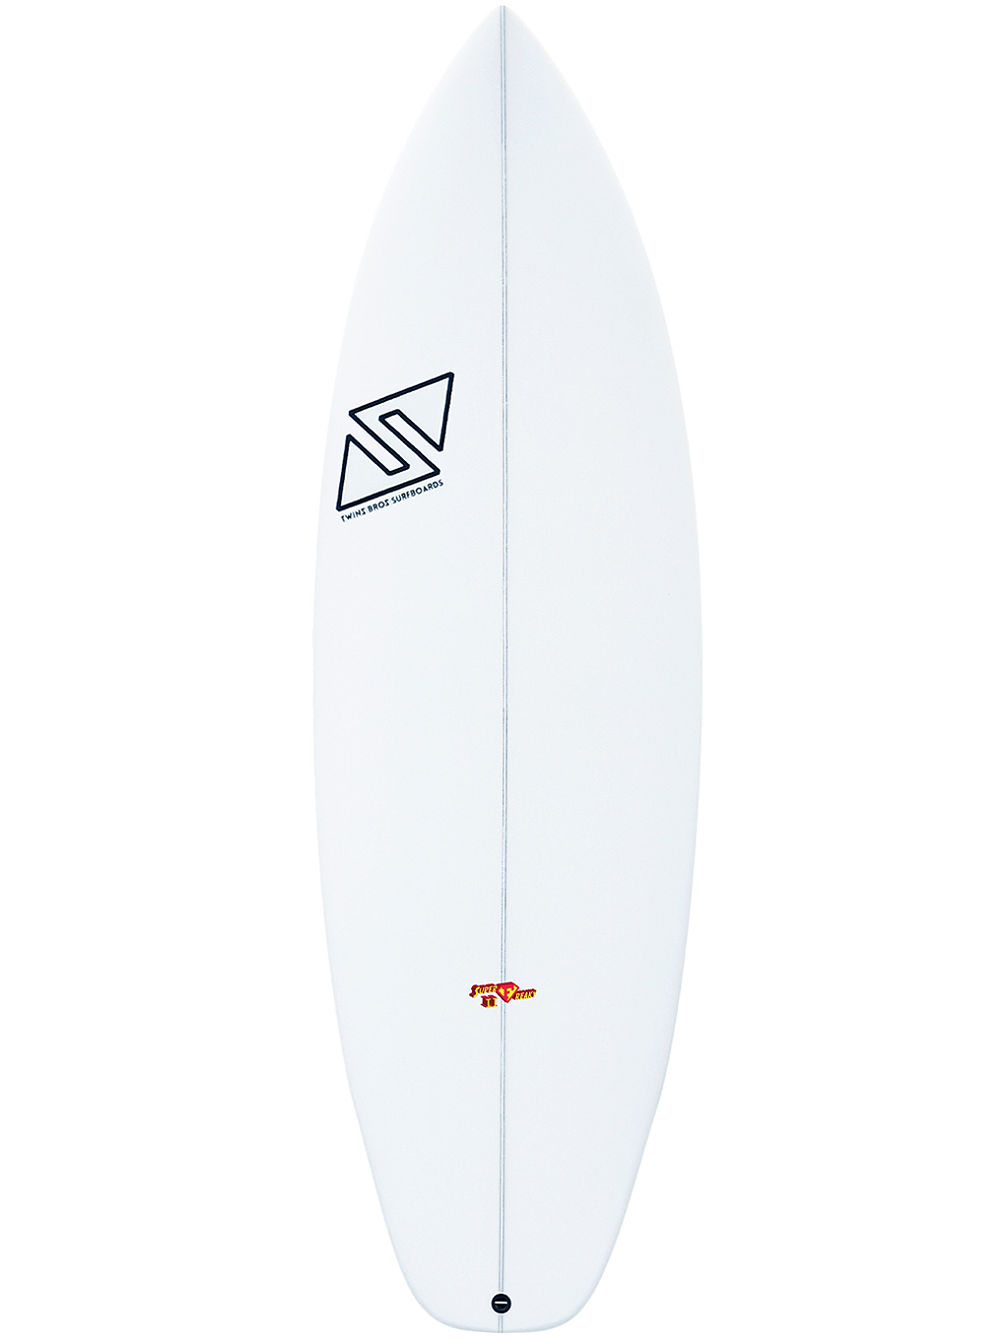 Superfreaky2 Future 5'2 Surfboard